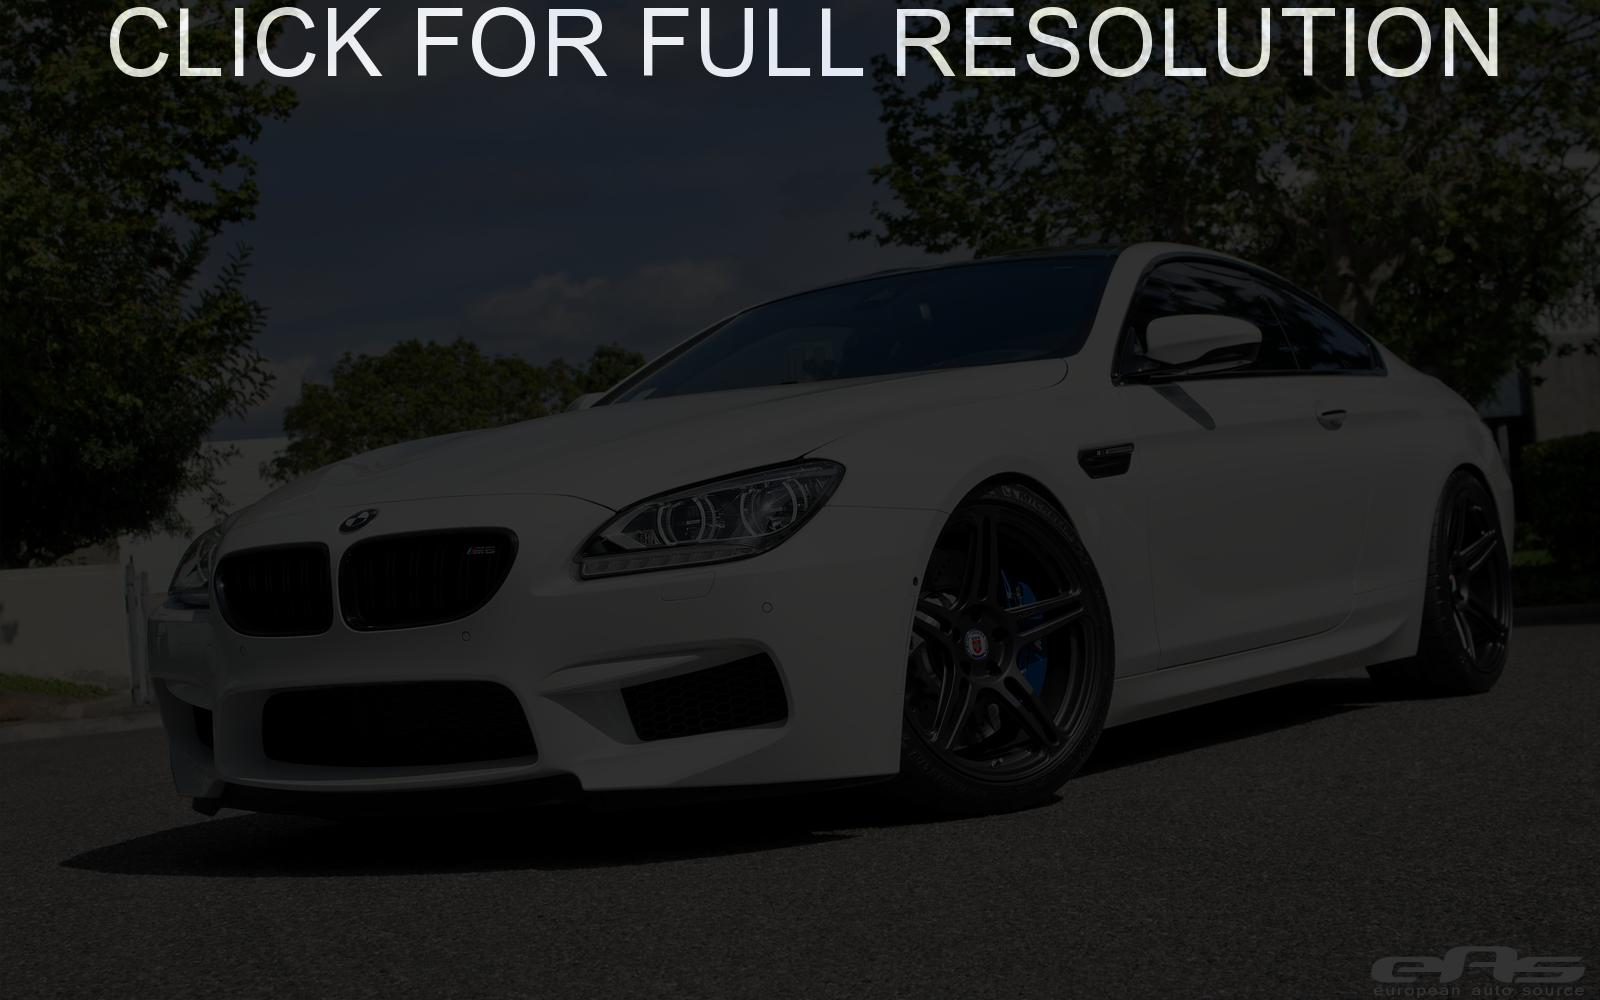 BMW M6 Auto & Car Wallpapers HD | Iphone | Android| Desktop 17 Wallpaper